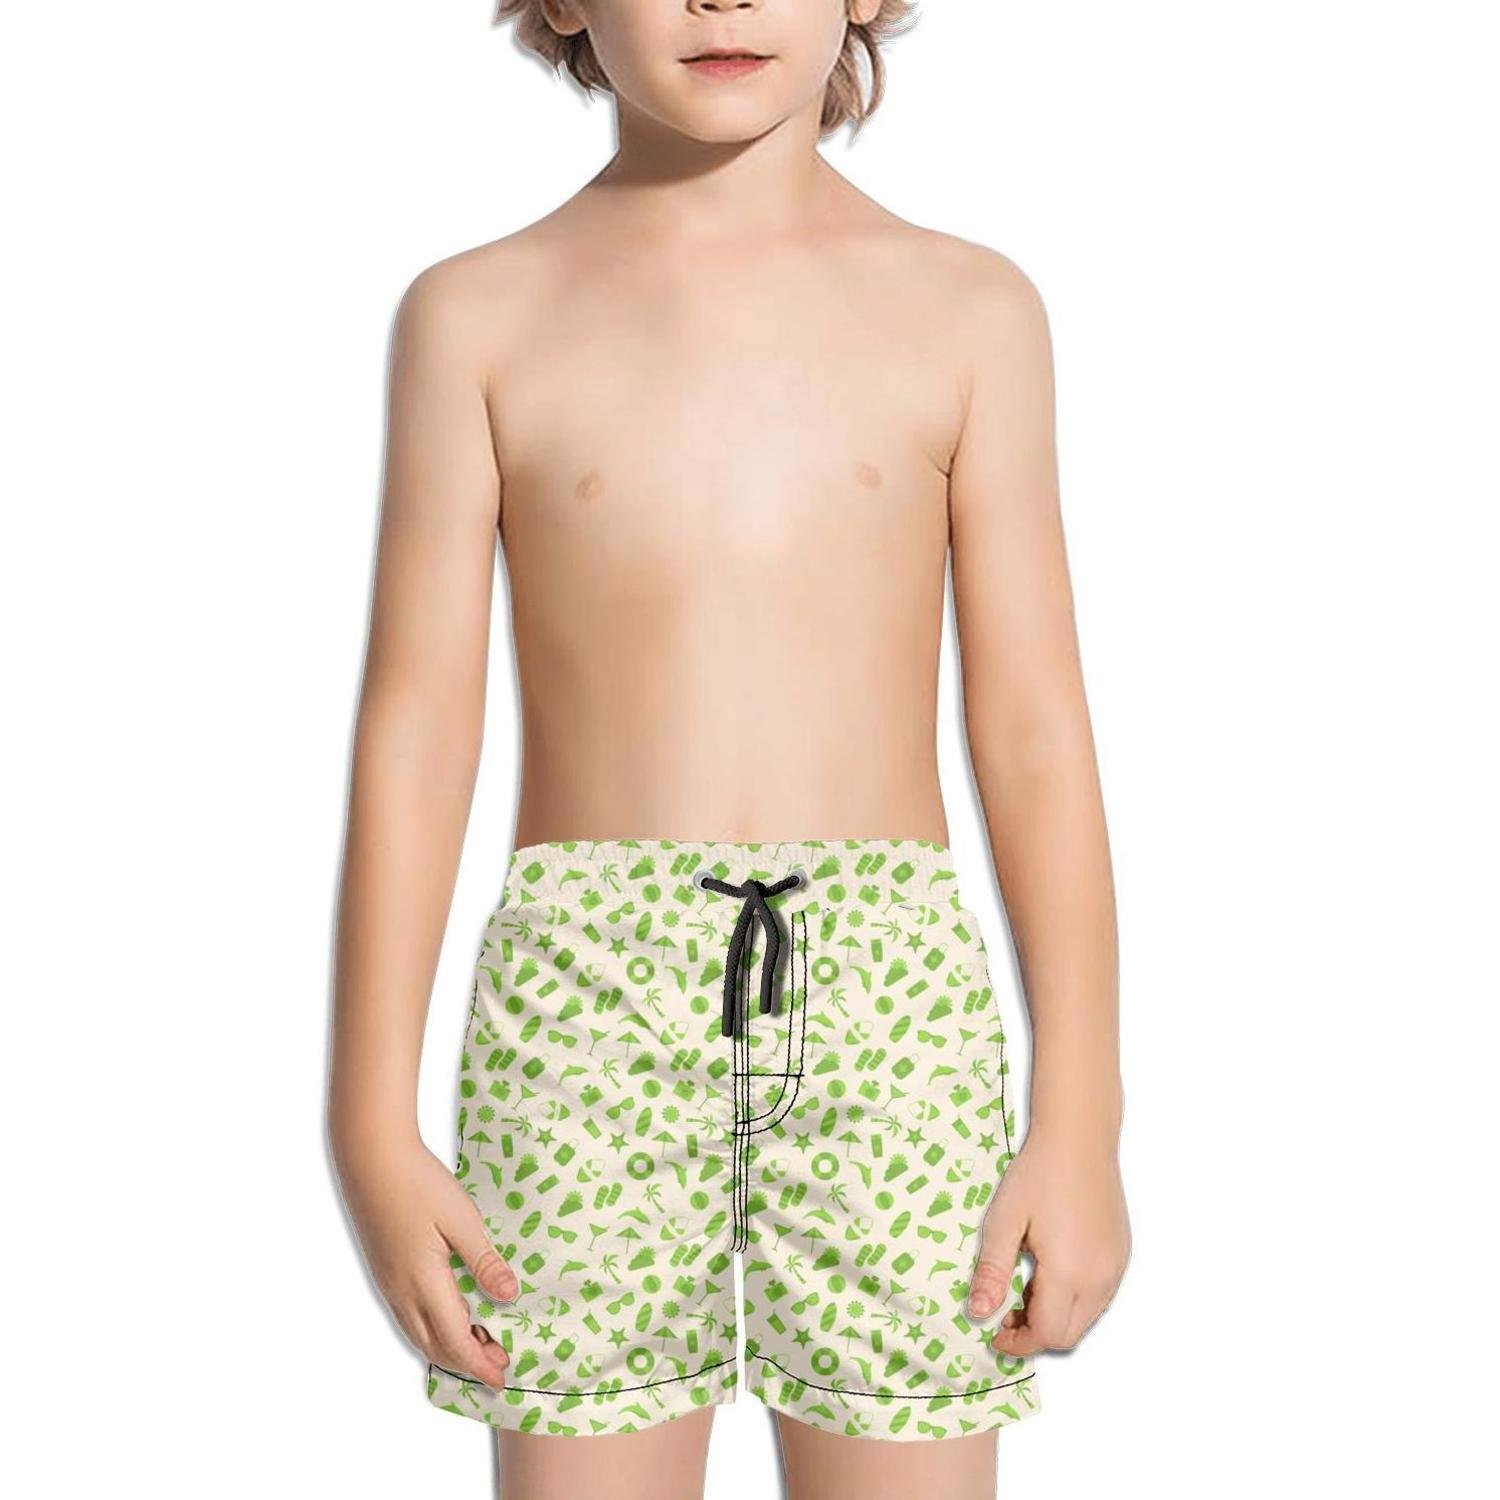 Ina Fers.Quick Dry Swim Trunks Summer Time Holiday Journey Shorts for Boys